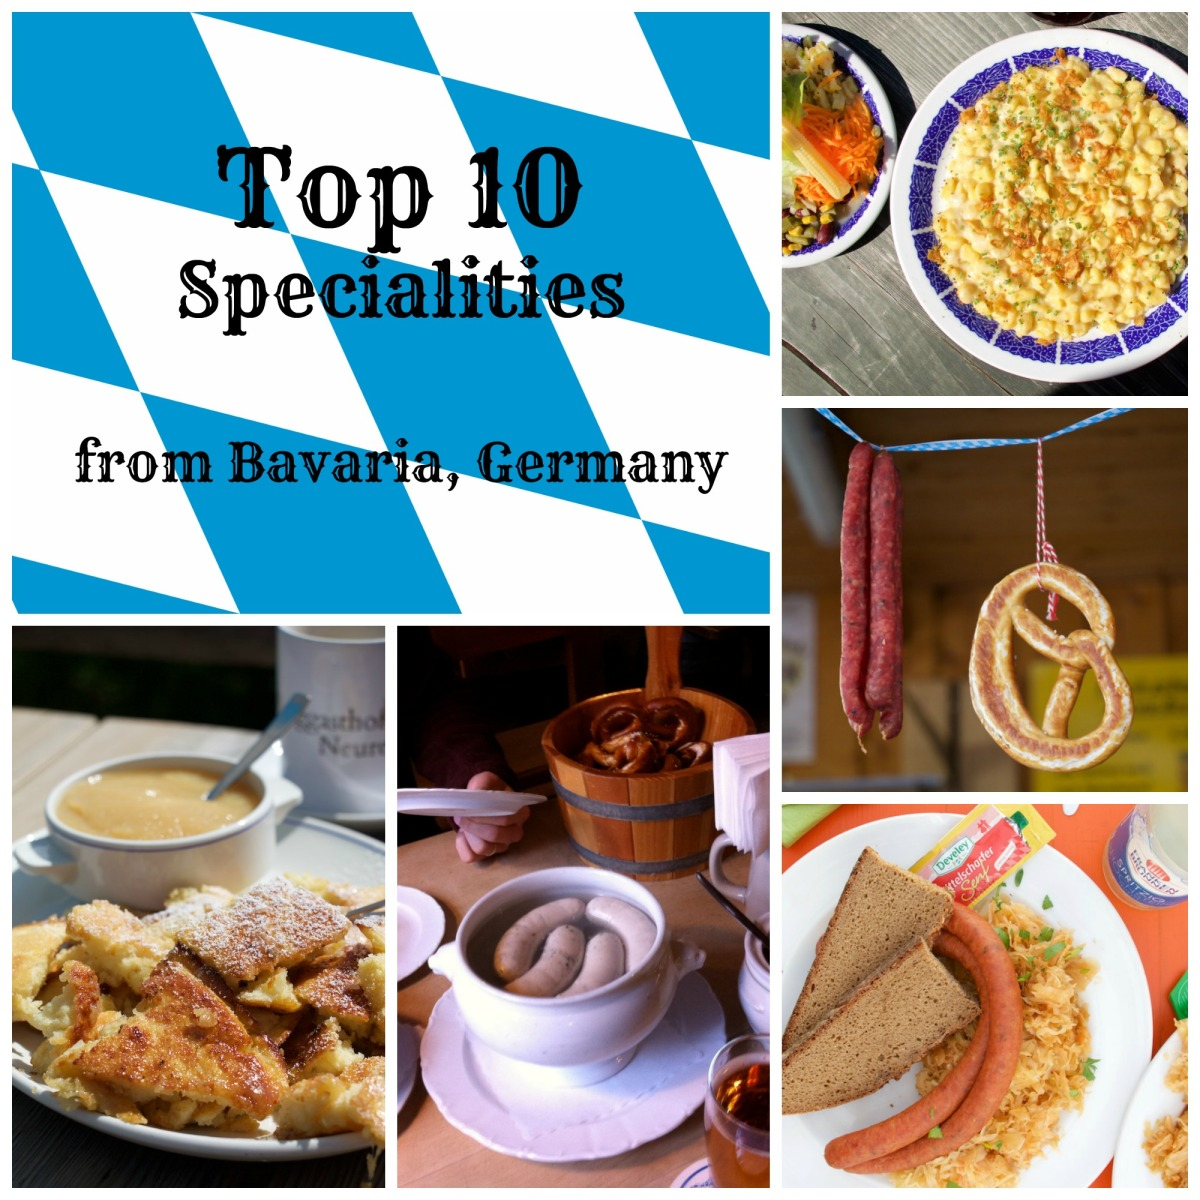 10 delicious specialities from Bavaria, Germany